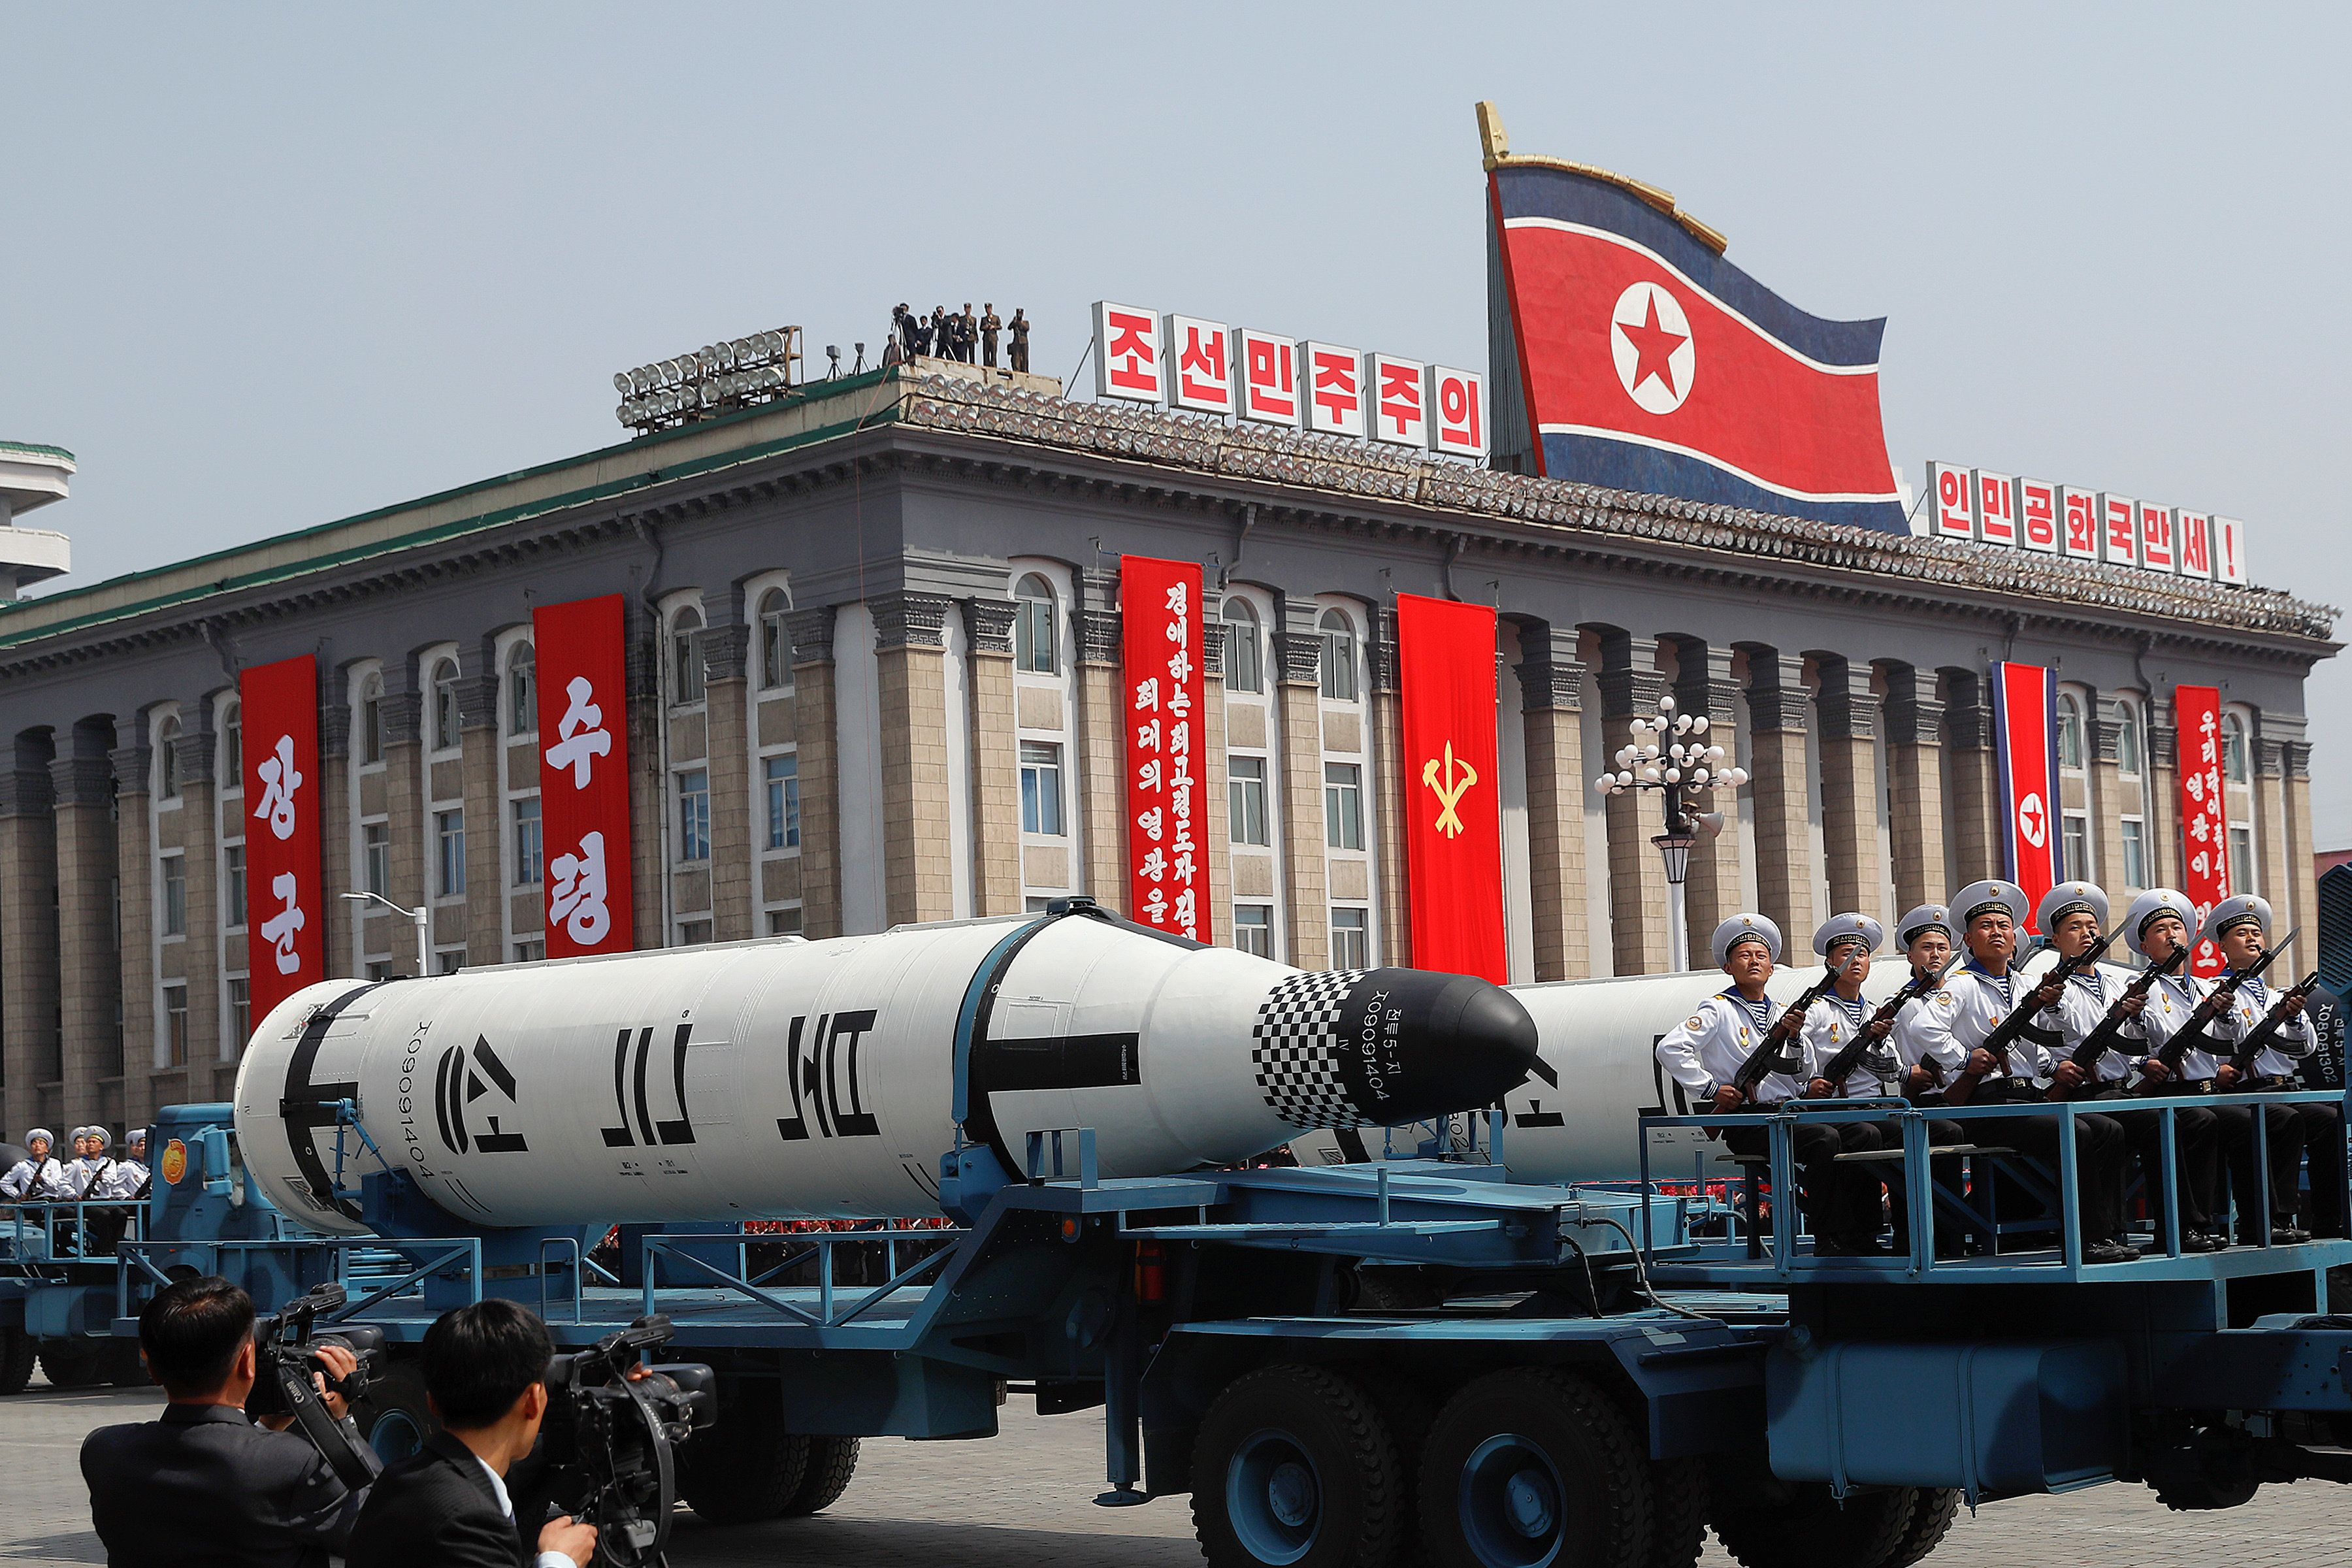 Military vehicles carry missiles during a military parade in Pyongyang, North